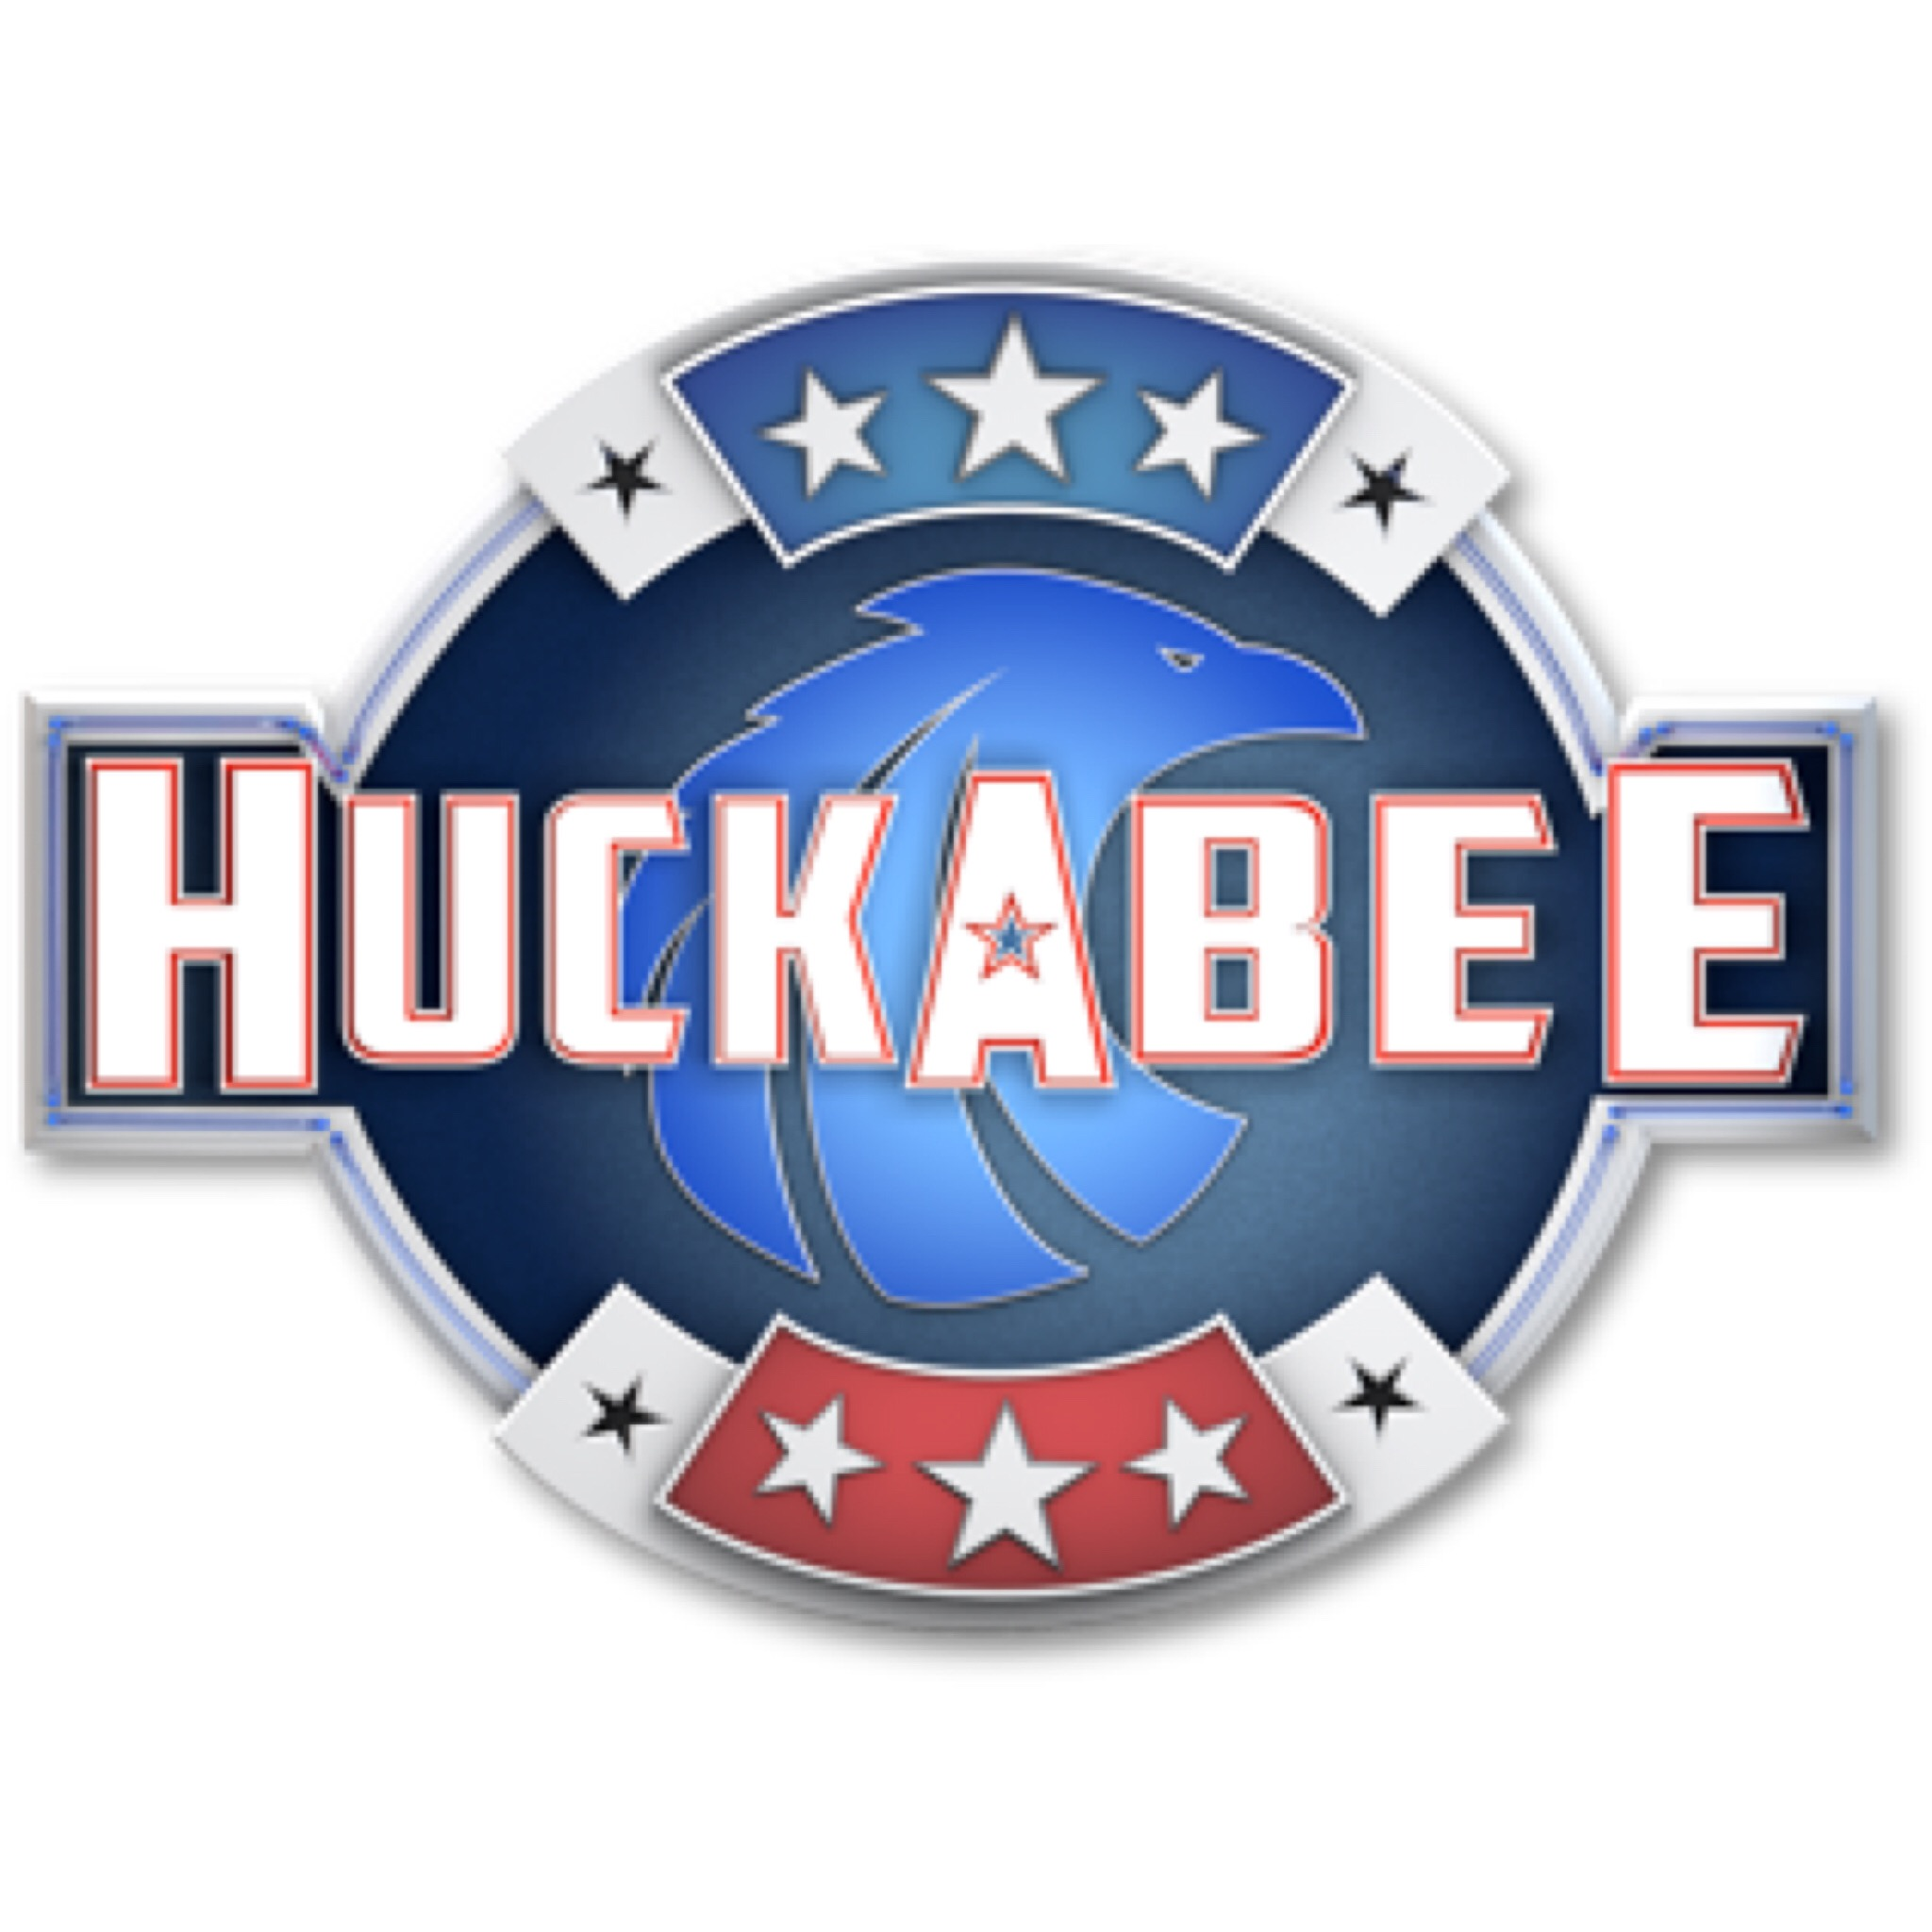 The Huckabee Show - Stephanie Owens & Dr. Linda Mintle Discuss Negative Body Image & Weight Issues